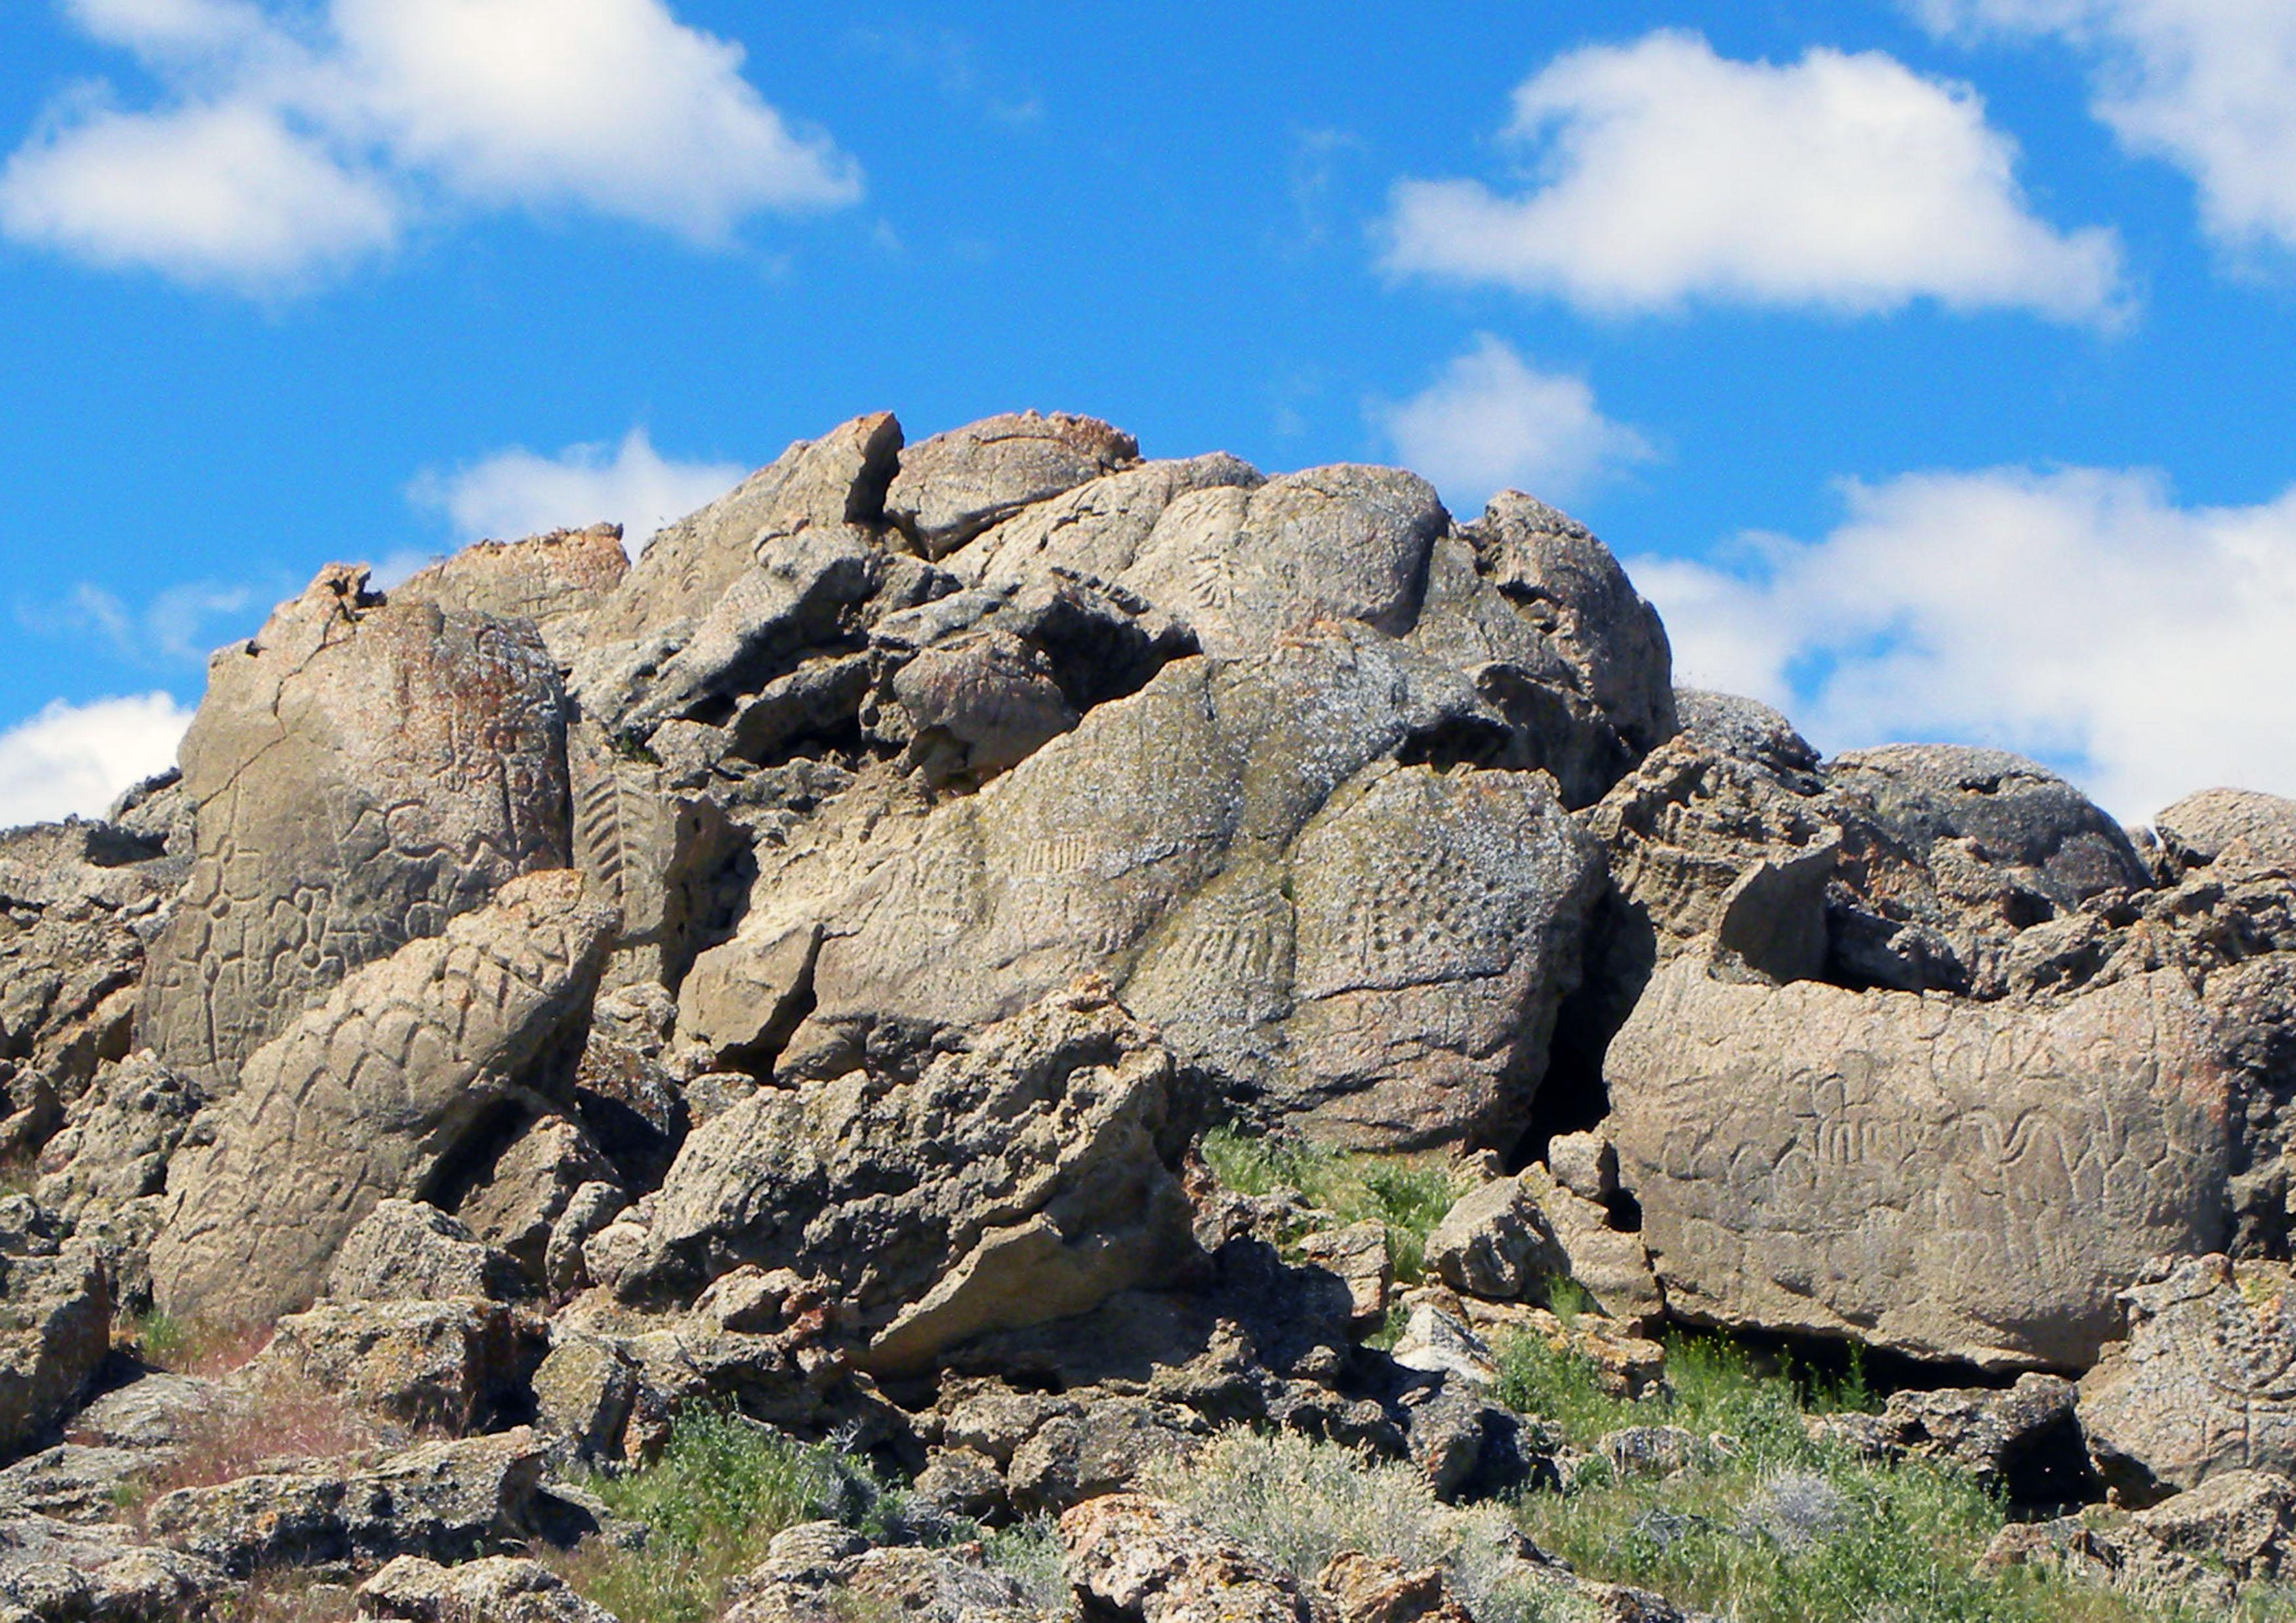 This May 2012 photo provided by the Nevada State Museum shows ancient carvings on limestone boulders near Nevada's Pyramid Lake which have been confirmed to be the oldest recorded petroglyphs in North America - at least 10,500 years old. Larry Benson, the curator of anthropology at the University of Colorado Natural History Museum, and Eugene Hattori, curator of anthropology at the Nevada State Museum, were among the co-authors of a paper on the findings published August 2013 in the Journal of Archaeological Science. This site was once the shoreline of the now dried up Winnemucca Lake. (AP Photo/Nevada State Museum, Eugene Hattori)